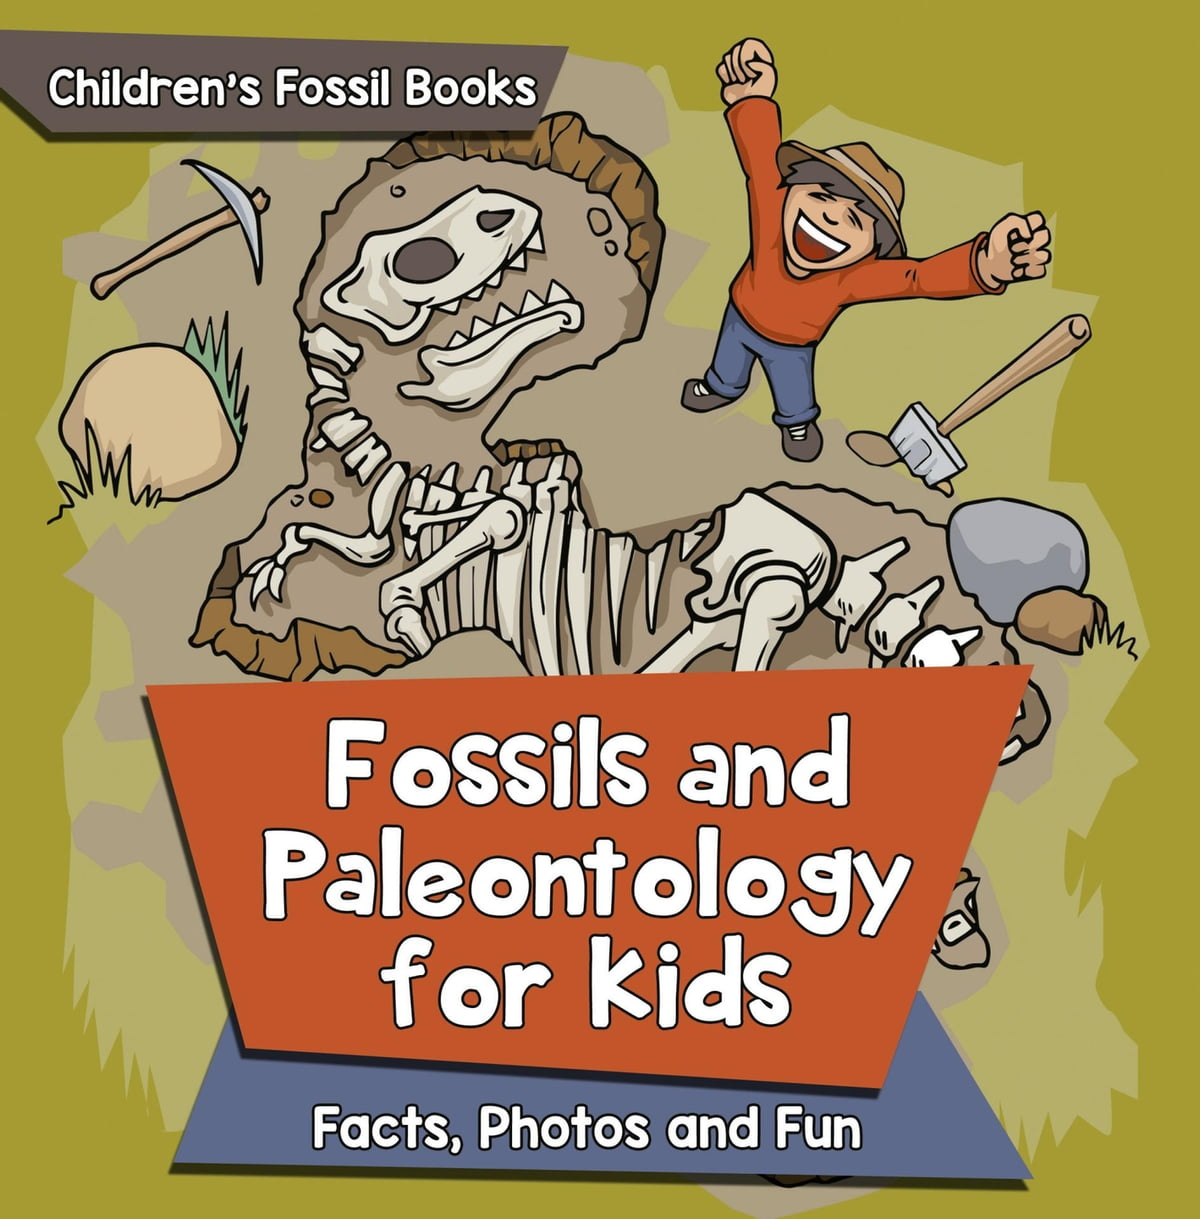 Fossils and Paleontology for kids: Facts, Photos and Fun | Children's  Fossil Books eBook by Baby Professor - 9781683058250 | Rakuten Kobo